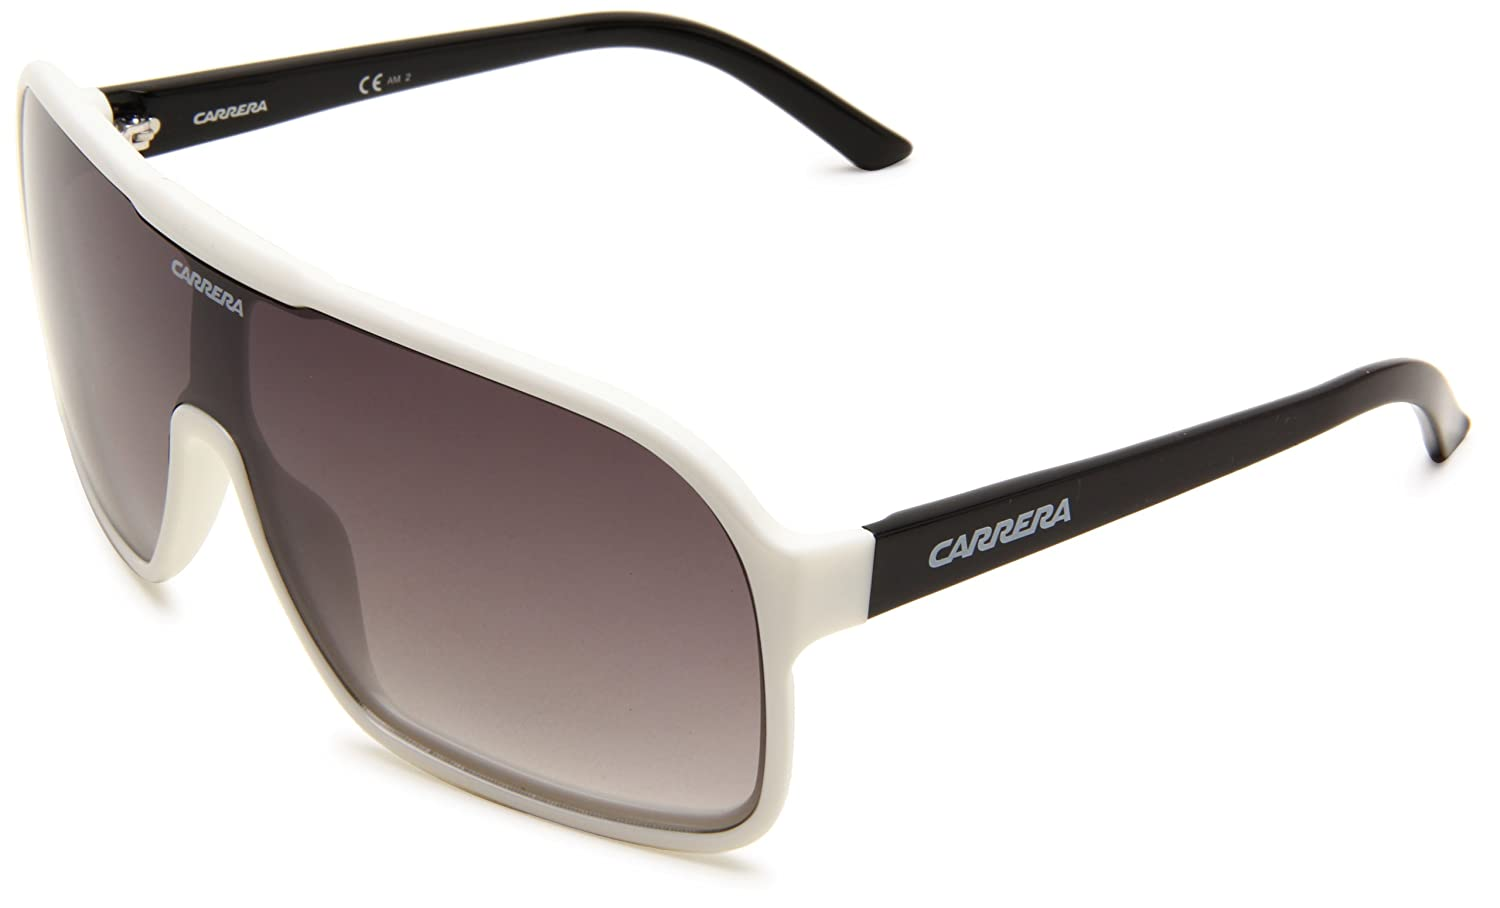 5514a0d695 Carrera Sunglasses (CARRERA 5530 OVE IC 99)  Amazon.co.uk  Clothing